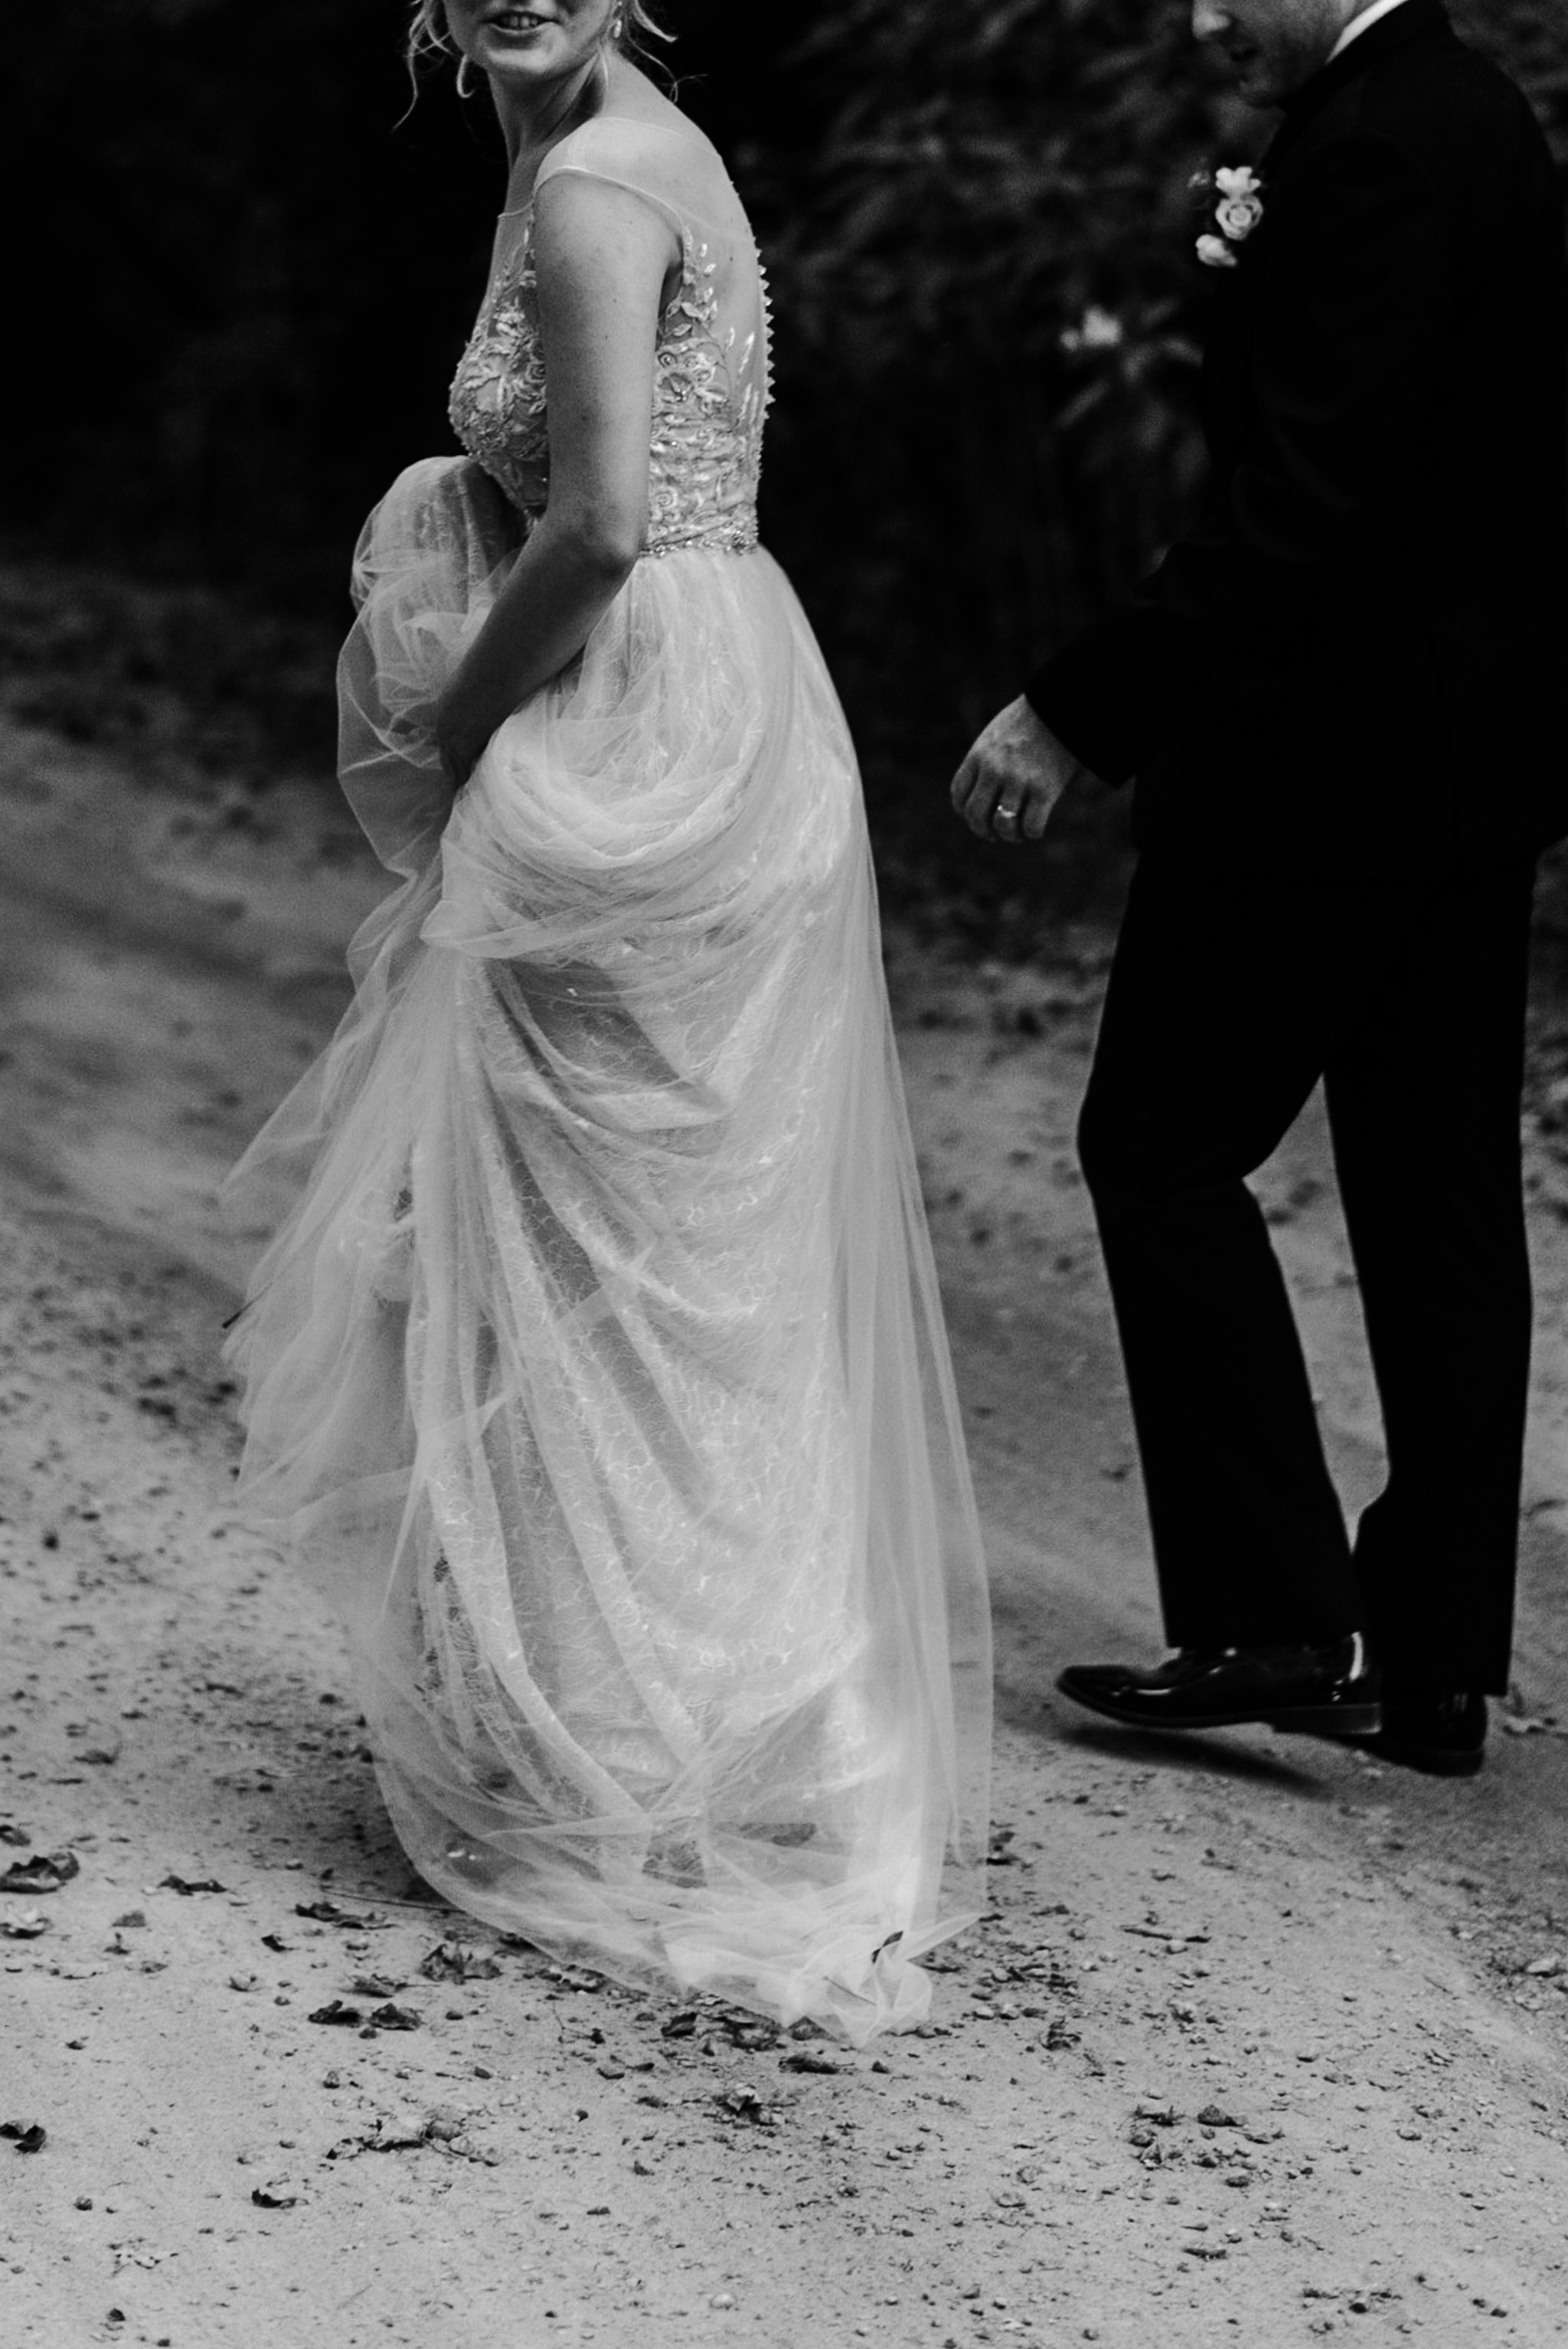 226-elegant-wedding-dress-couple-portraits-penryn-park-toronto-photographer.jpg